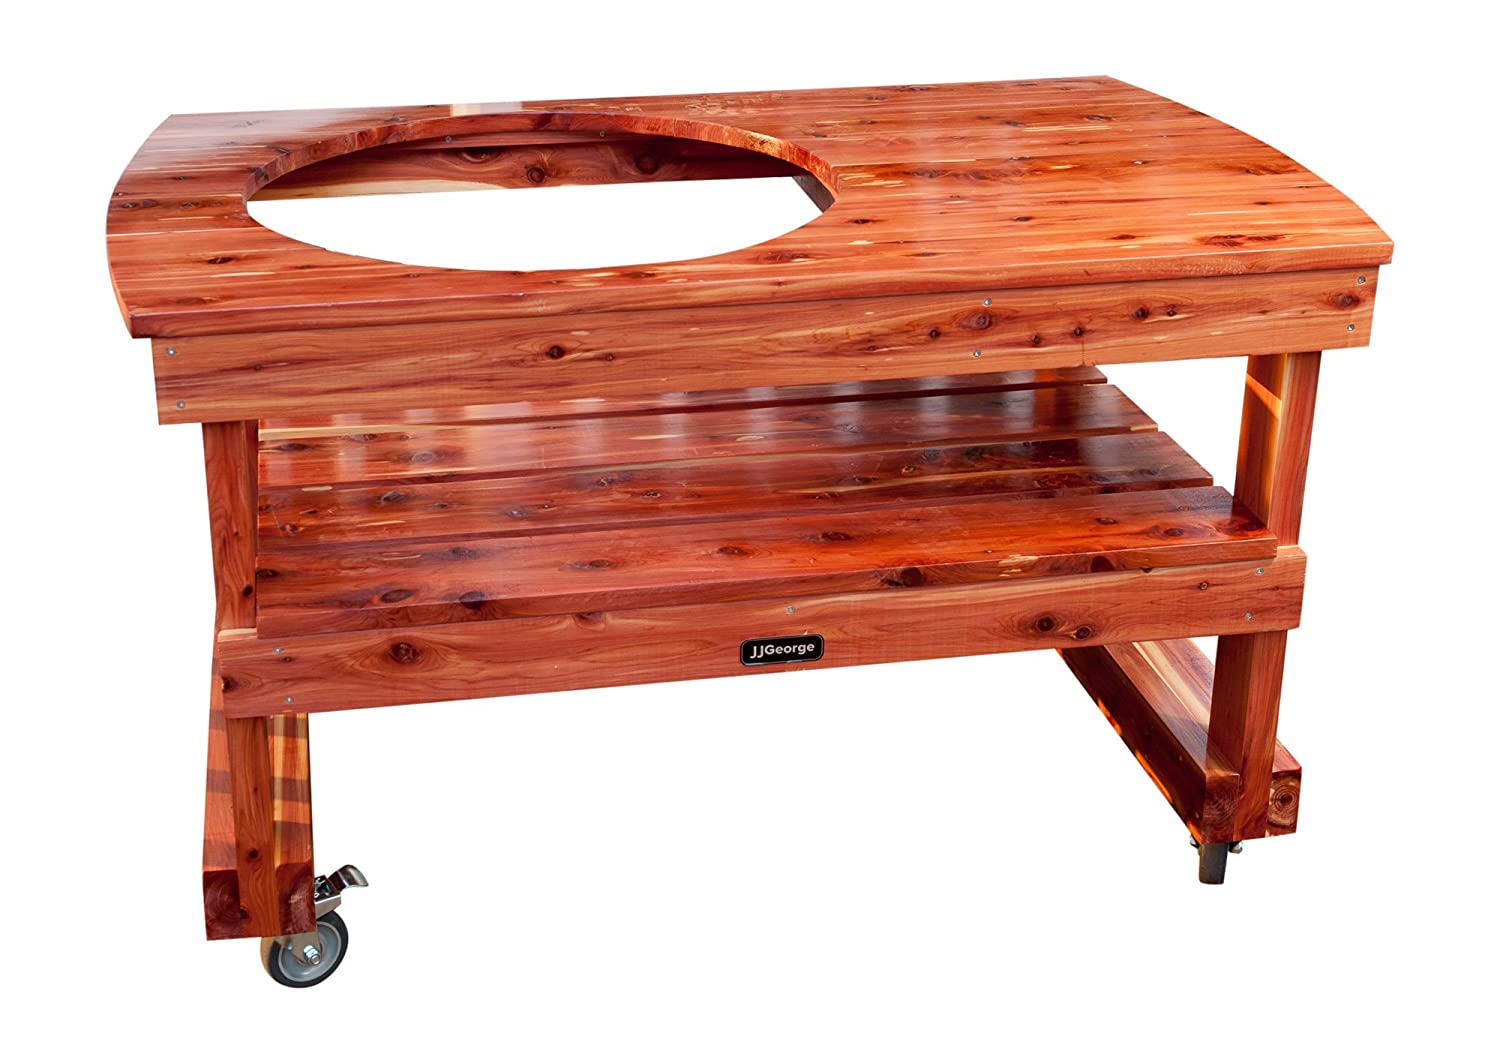 JJ George Table for (Extra Large) Big Green Egg w/Free Cover